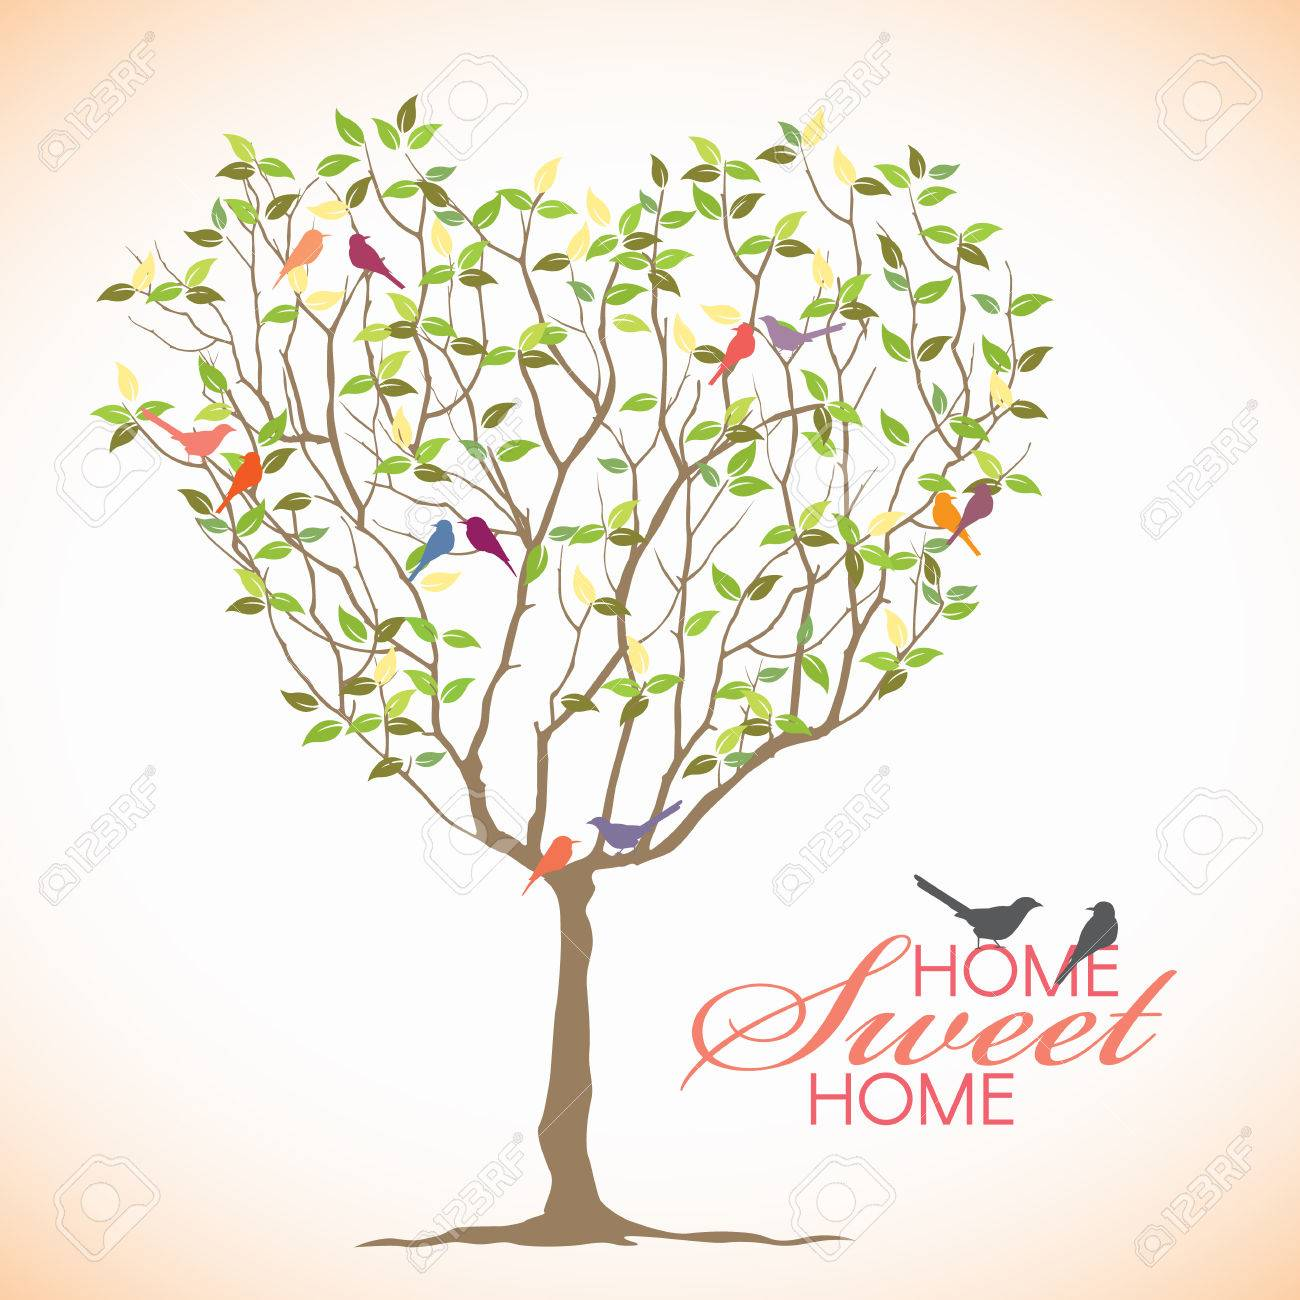 Home Sweet Home - Bird And Heart Tree Vector Design Royalty Free ...